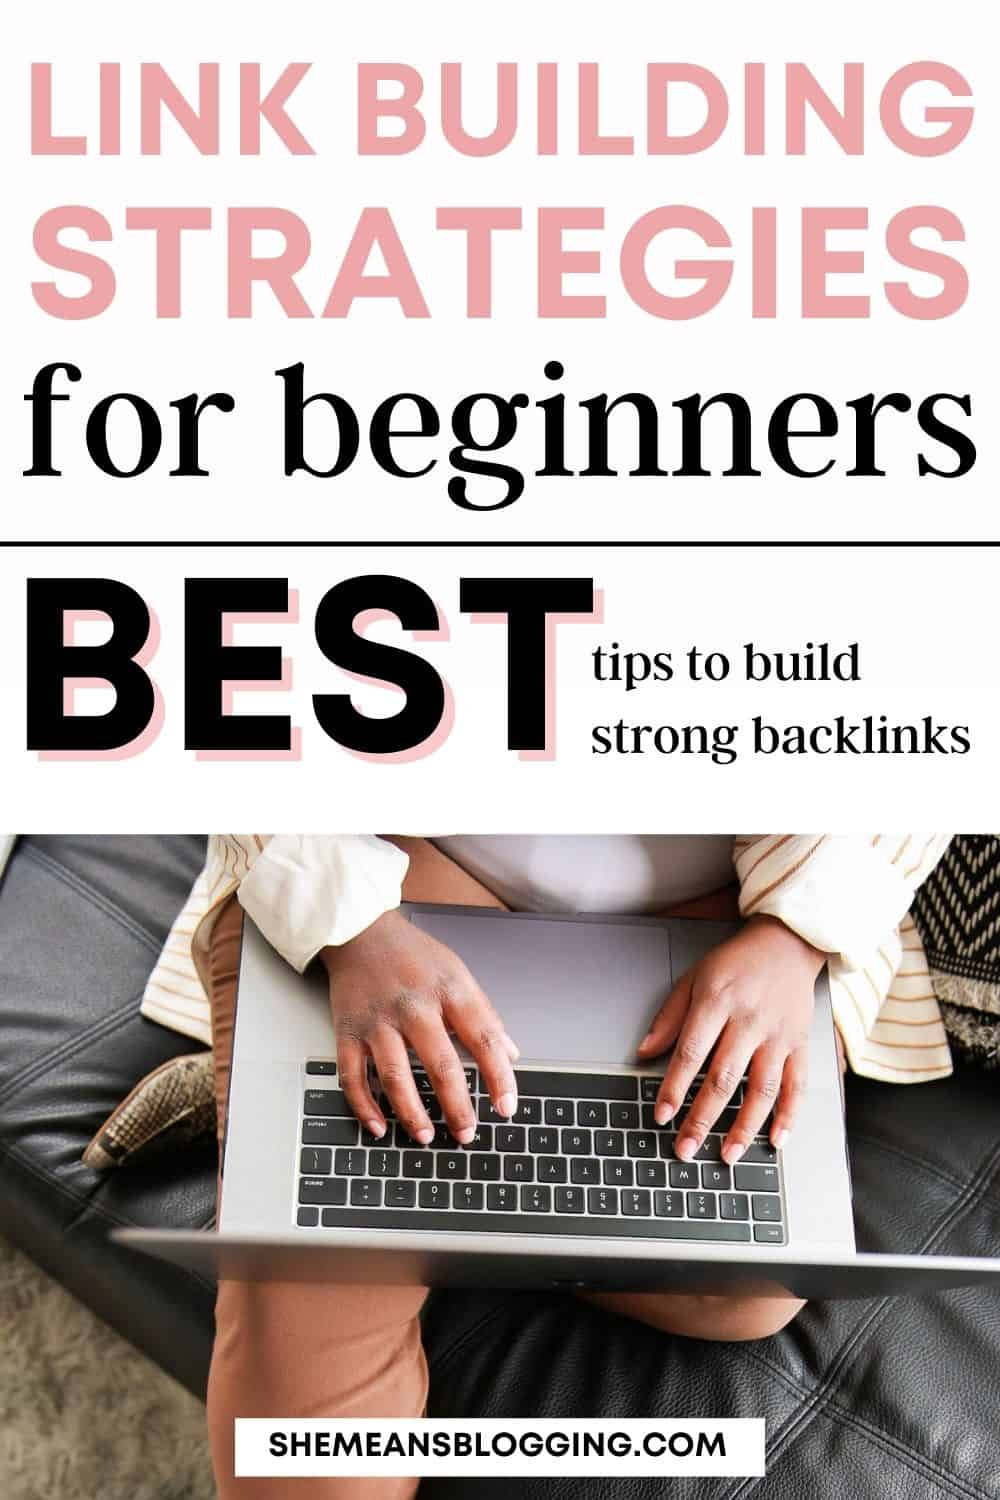 Pinnable image for link building tips for beginners